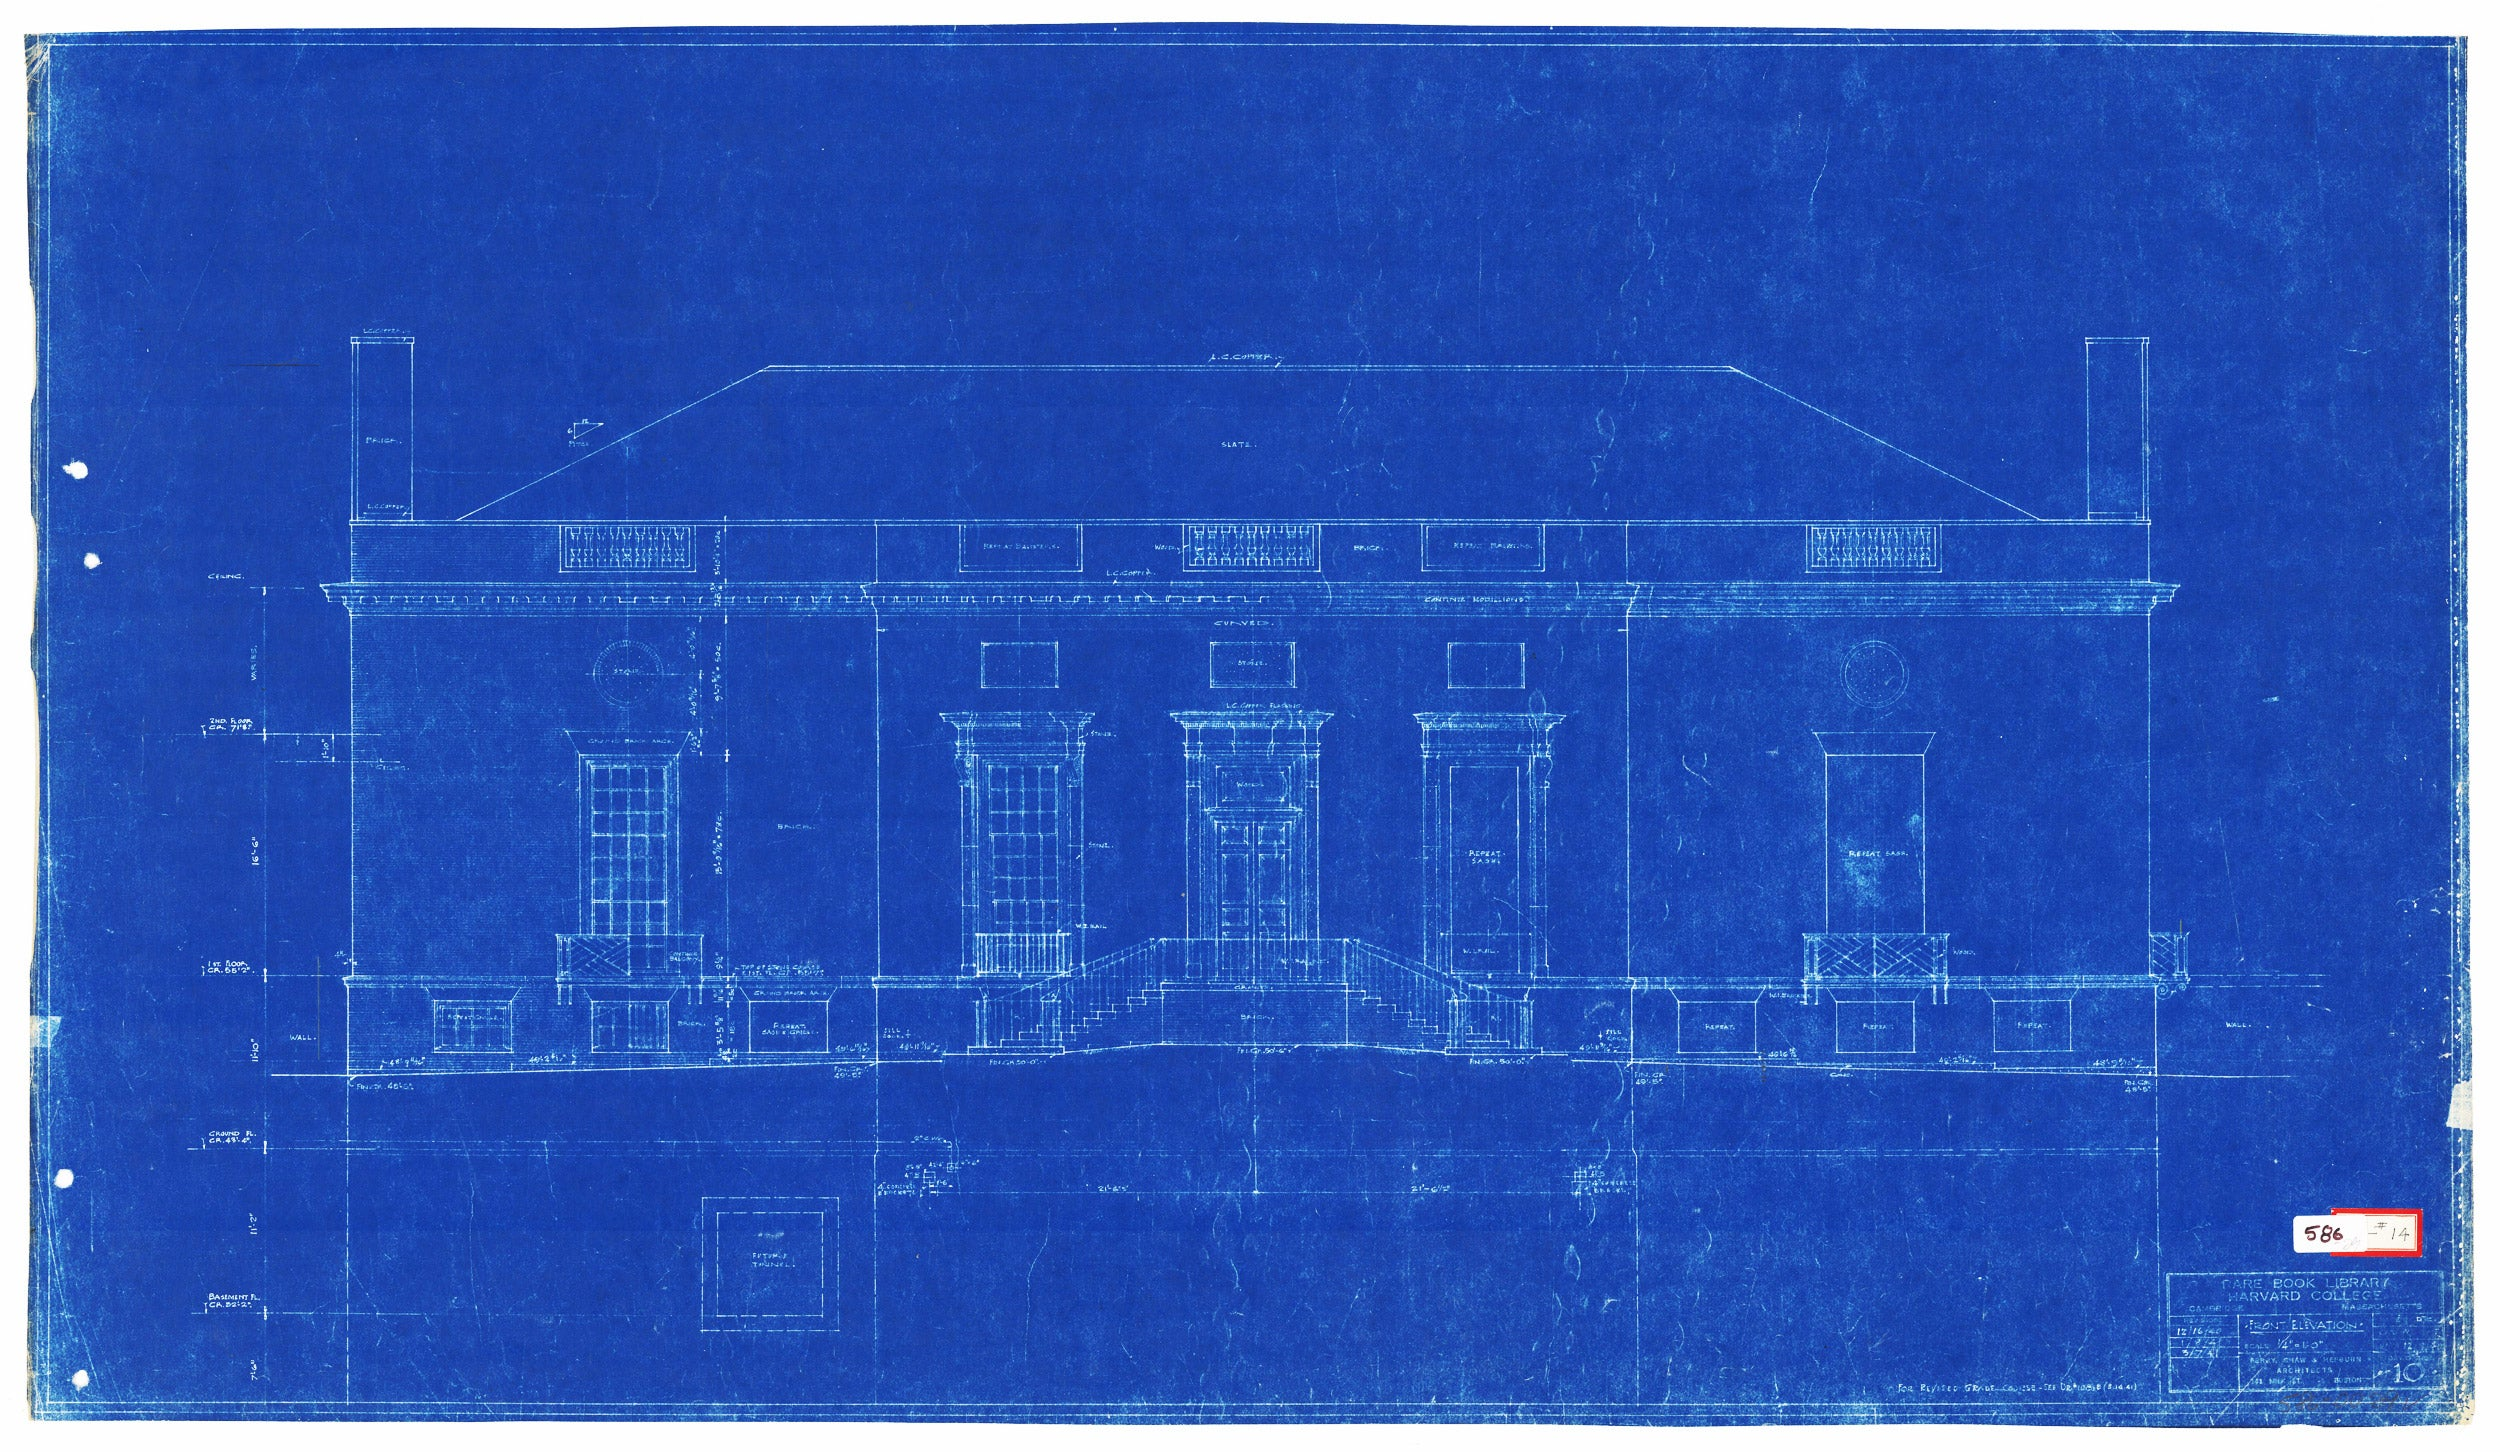 Original 1940 blueprint for Harvard's Houghton Library.